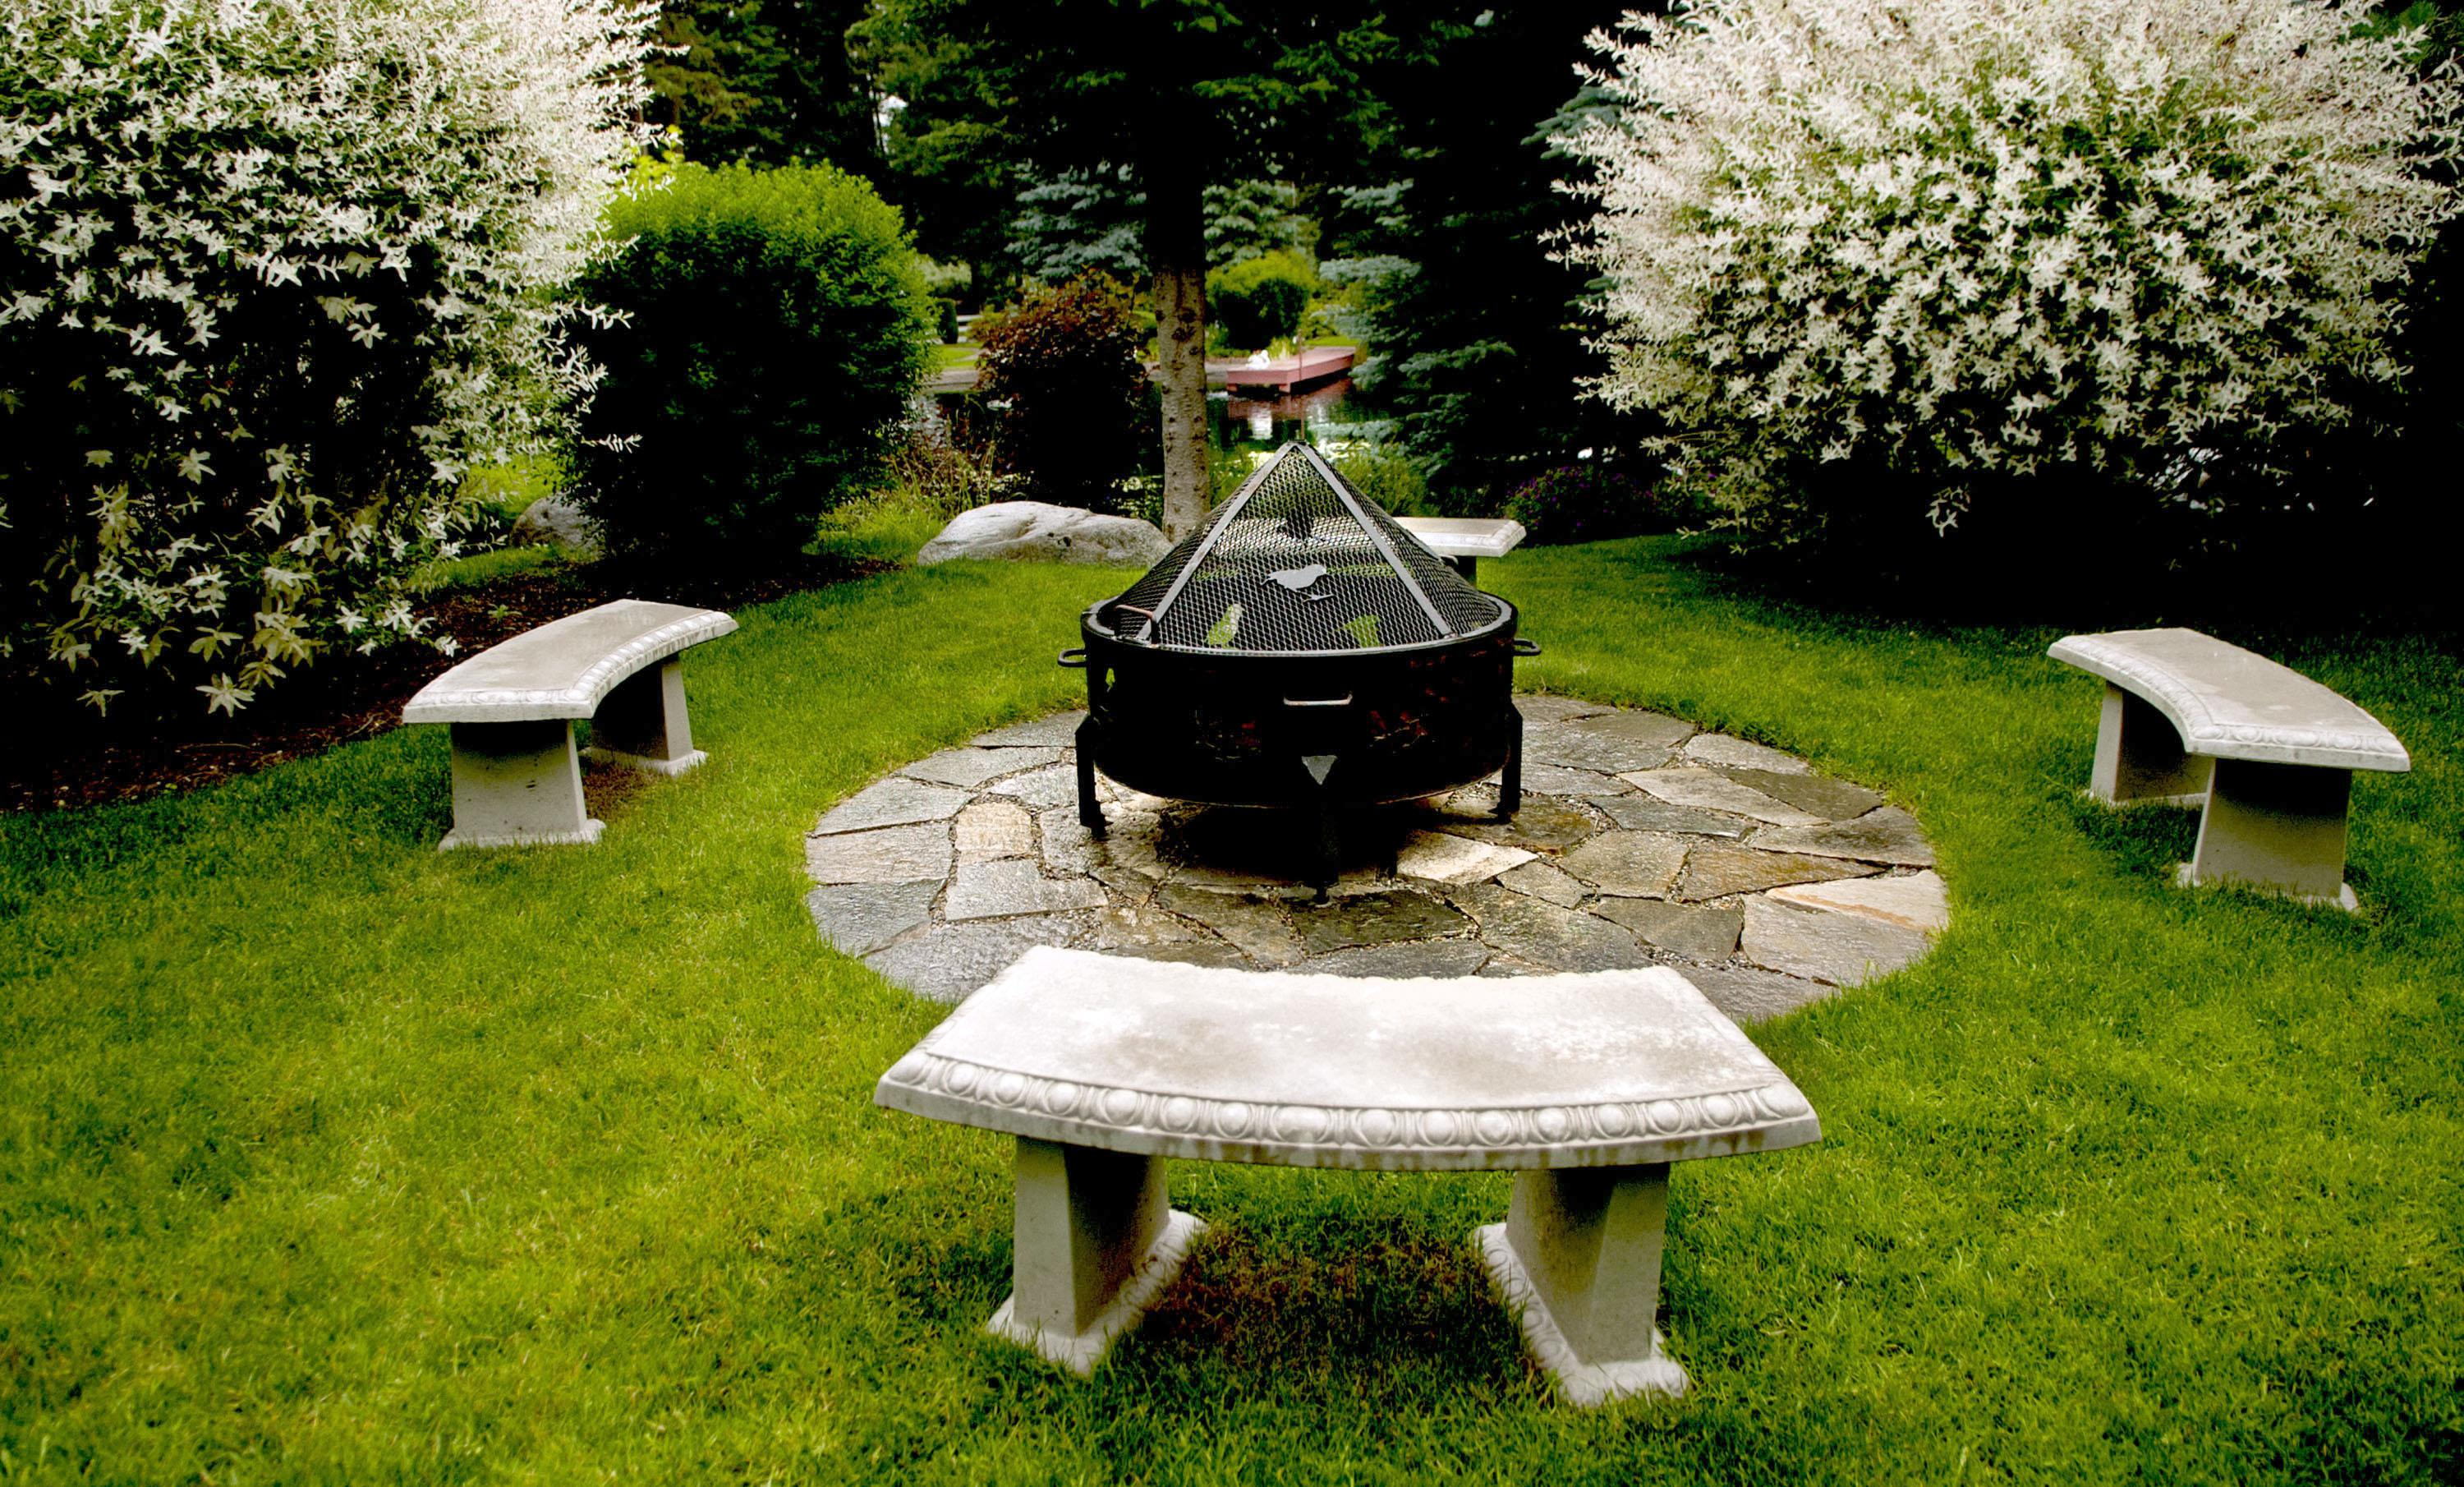 Backyard Fire Pit Regulations - House of Things Wallpaper